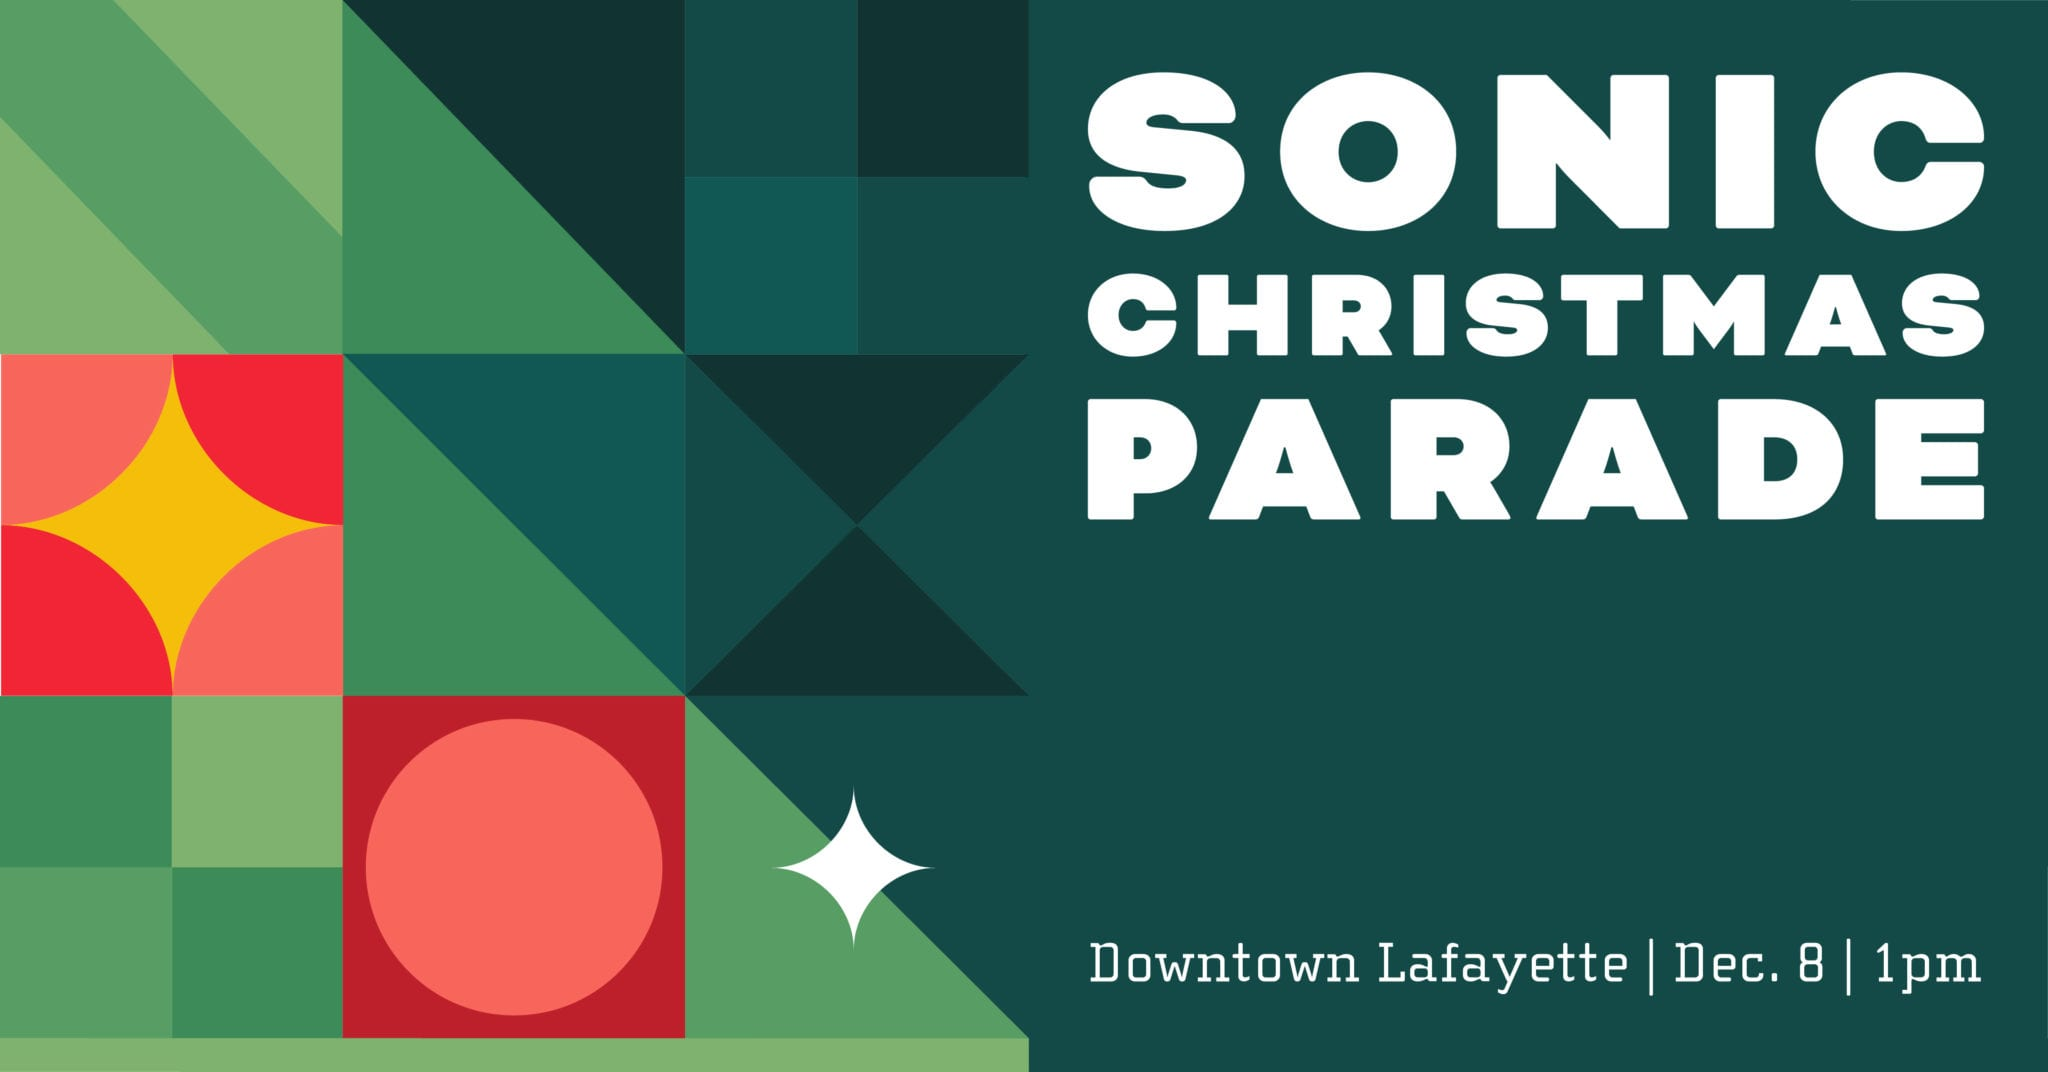 The Sonic Christmas Parade 2020 In Lafayette Louisiana Sonic Christmas Parade | Downtown Lafayette Unlimited